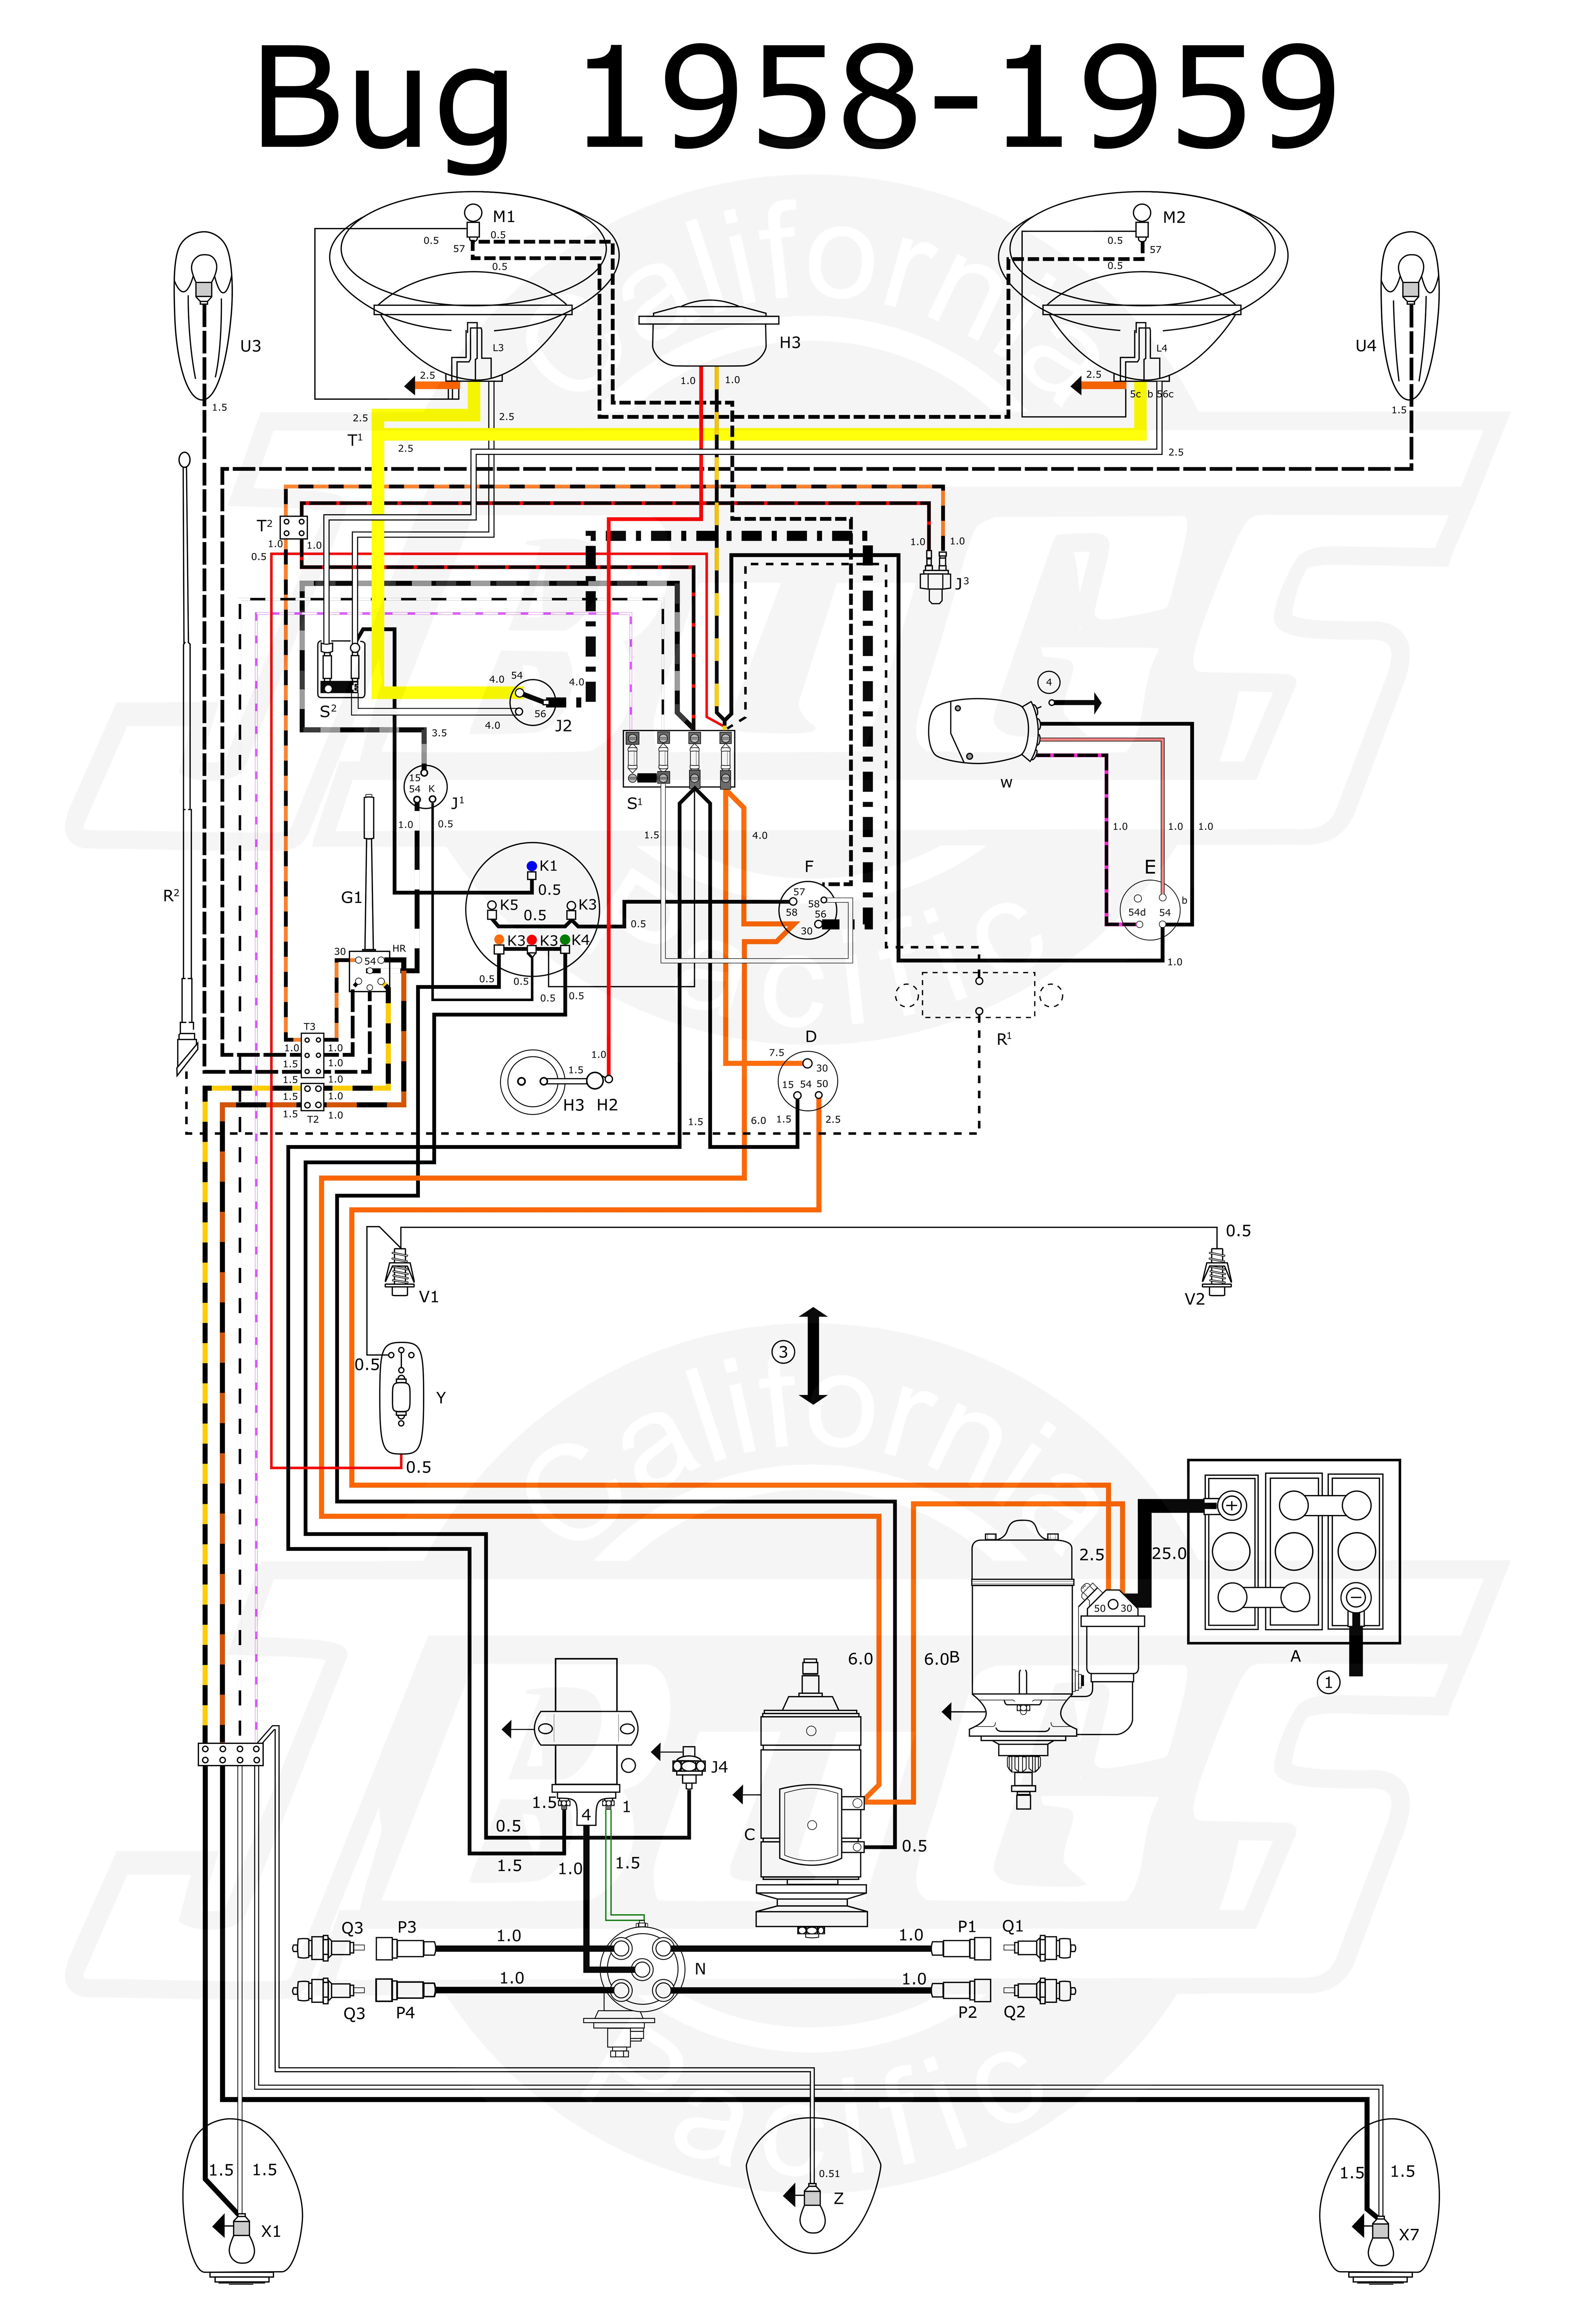 easy wiring harness vw air cooled wiring diagram schema air cooled vw engine wiring diagram air cooled vw wiring diagram [ 5070 x 7475 Pixel ]